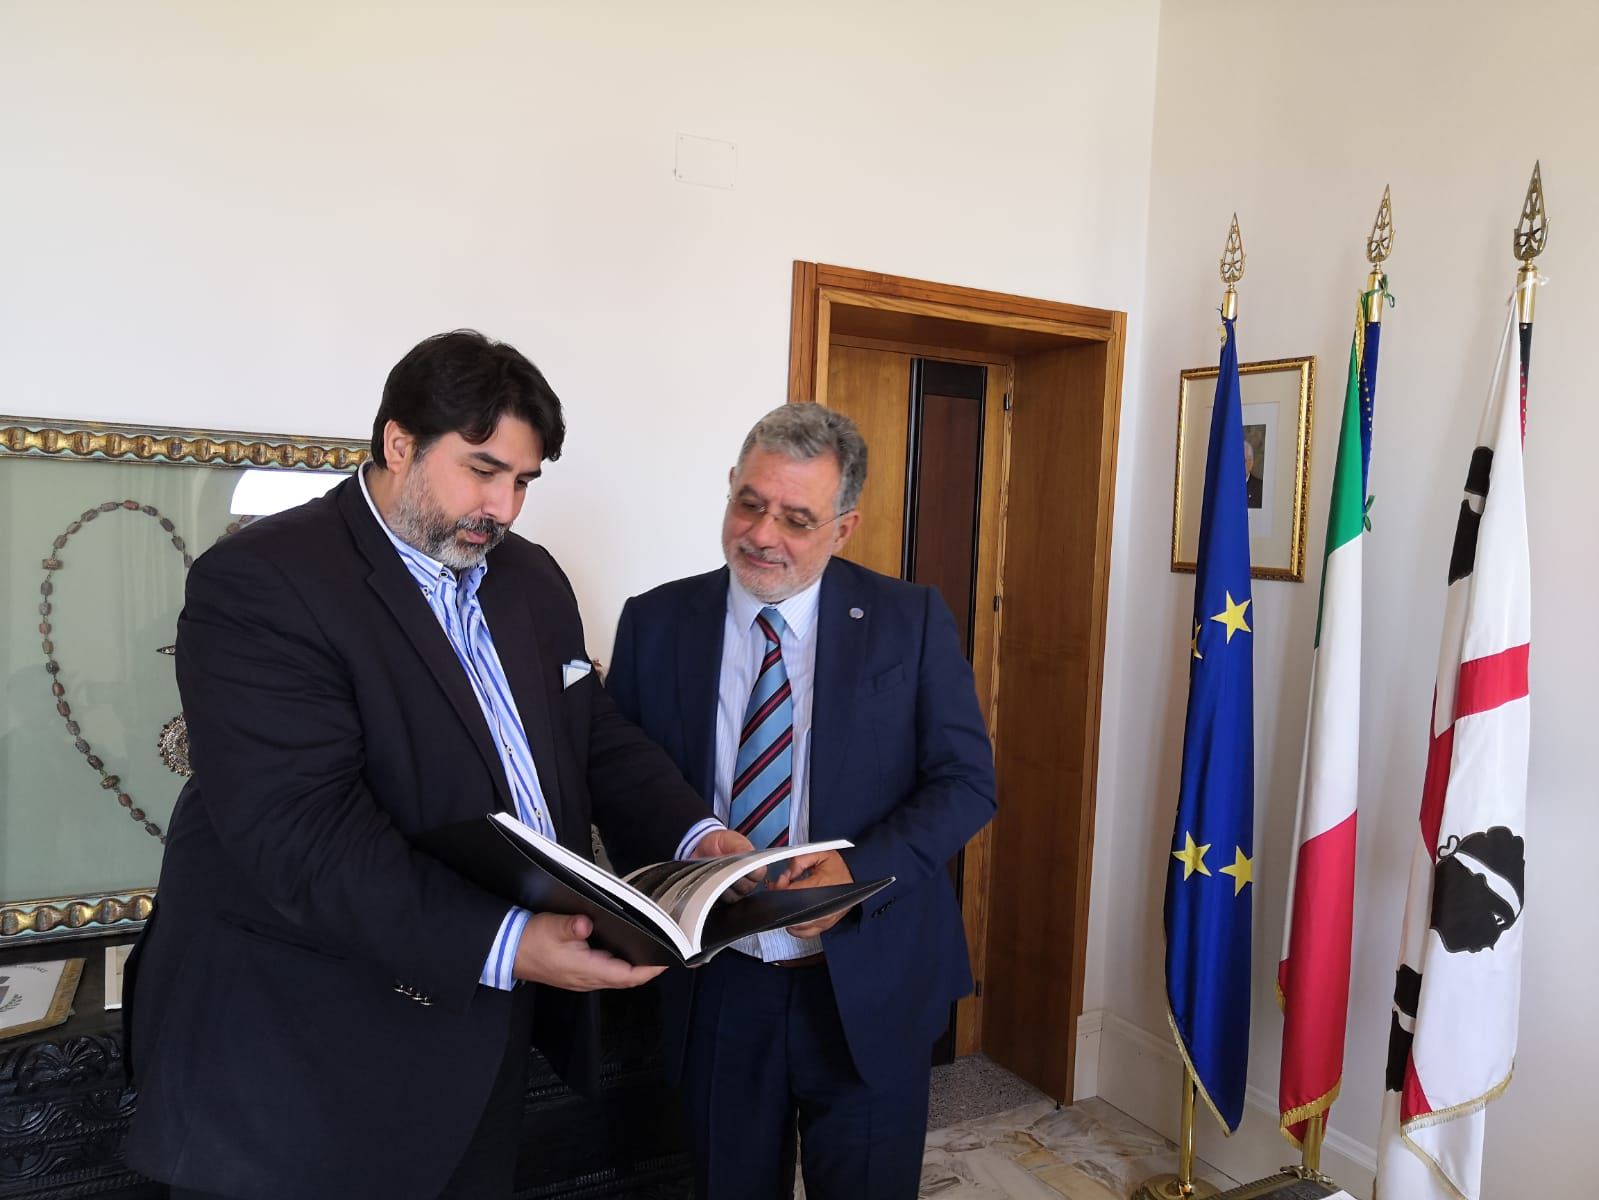 Sardinia to establish closer relations with PAM and its Mediterranean network